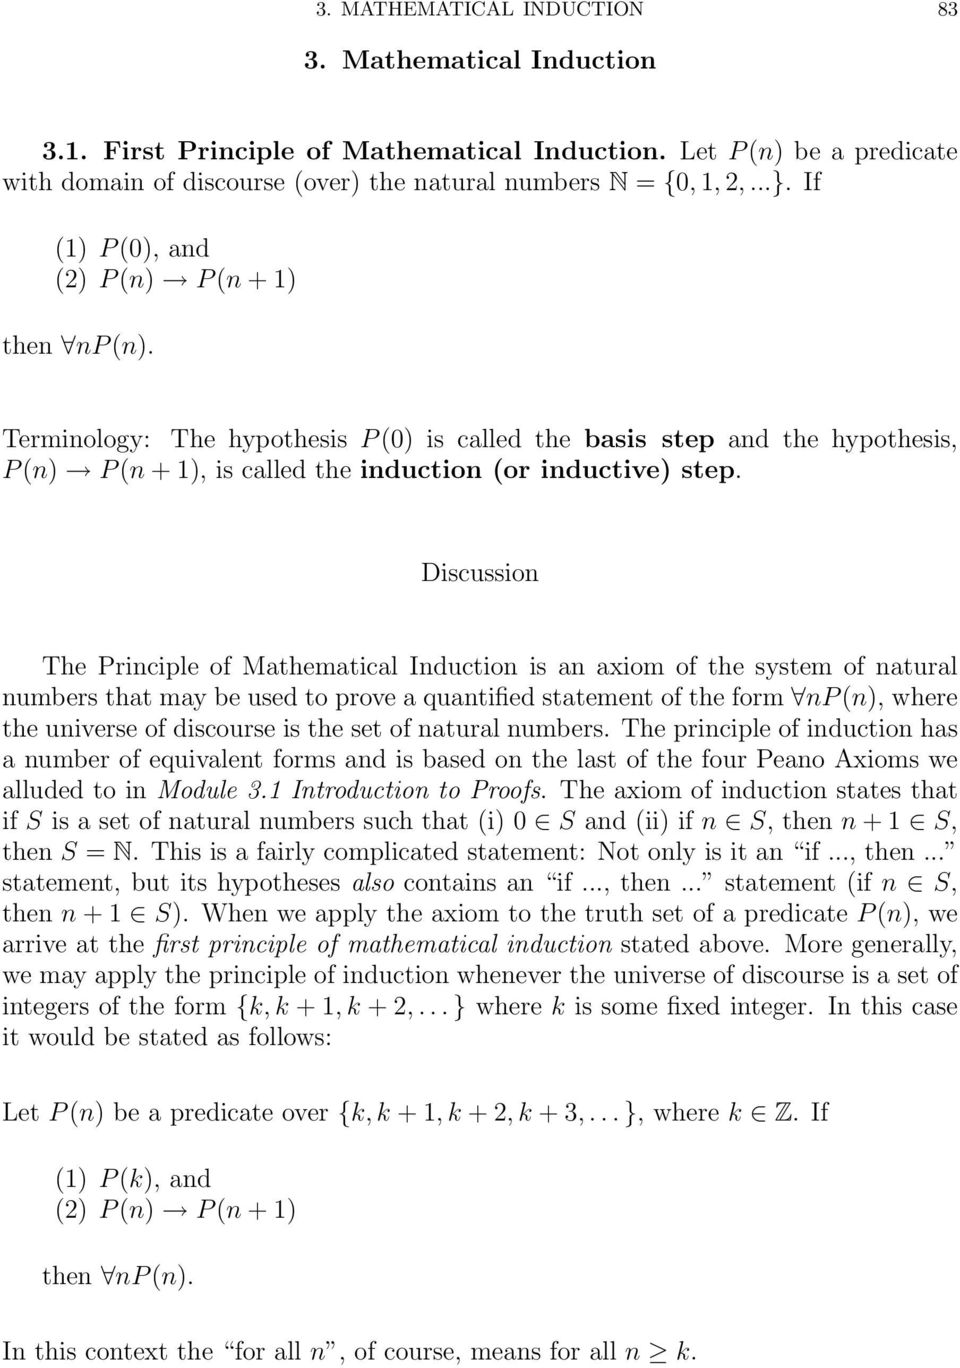 The Principle of Mathematical Induction is an axiom of the system of natural numbers that may be used to prove a quantified statement of the form np (n), where the universe of discourse is the set of